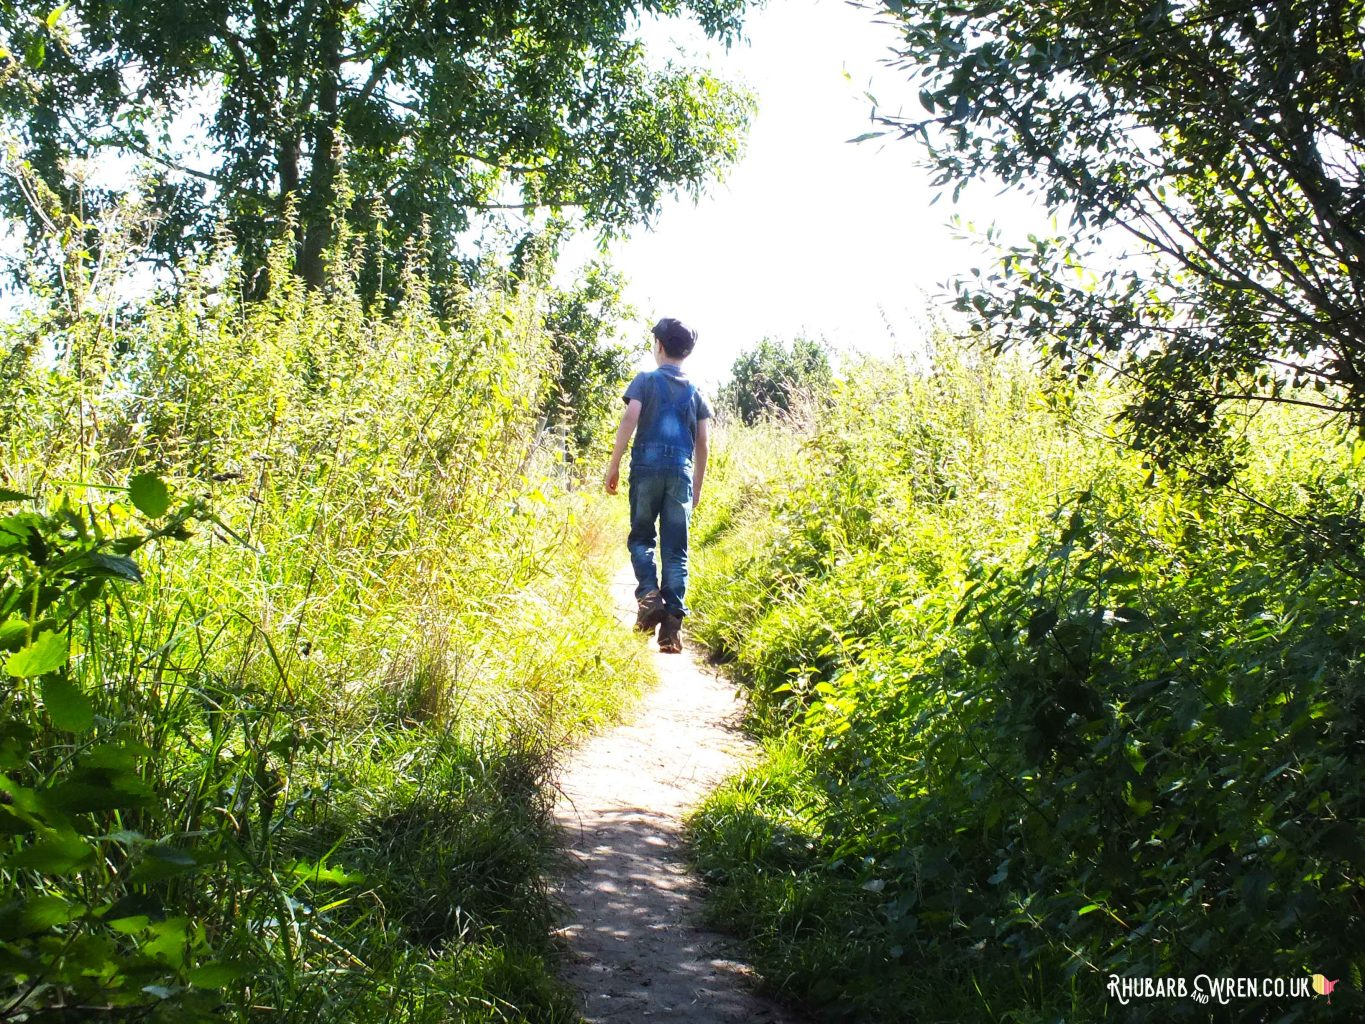 Boy walking along path through sunlit long grass